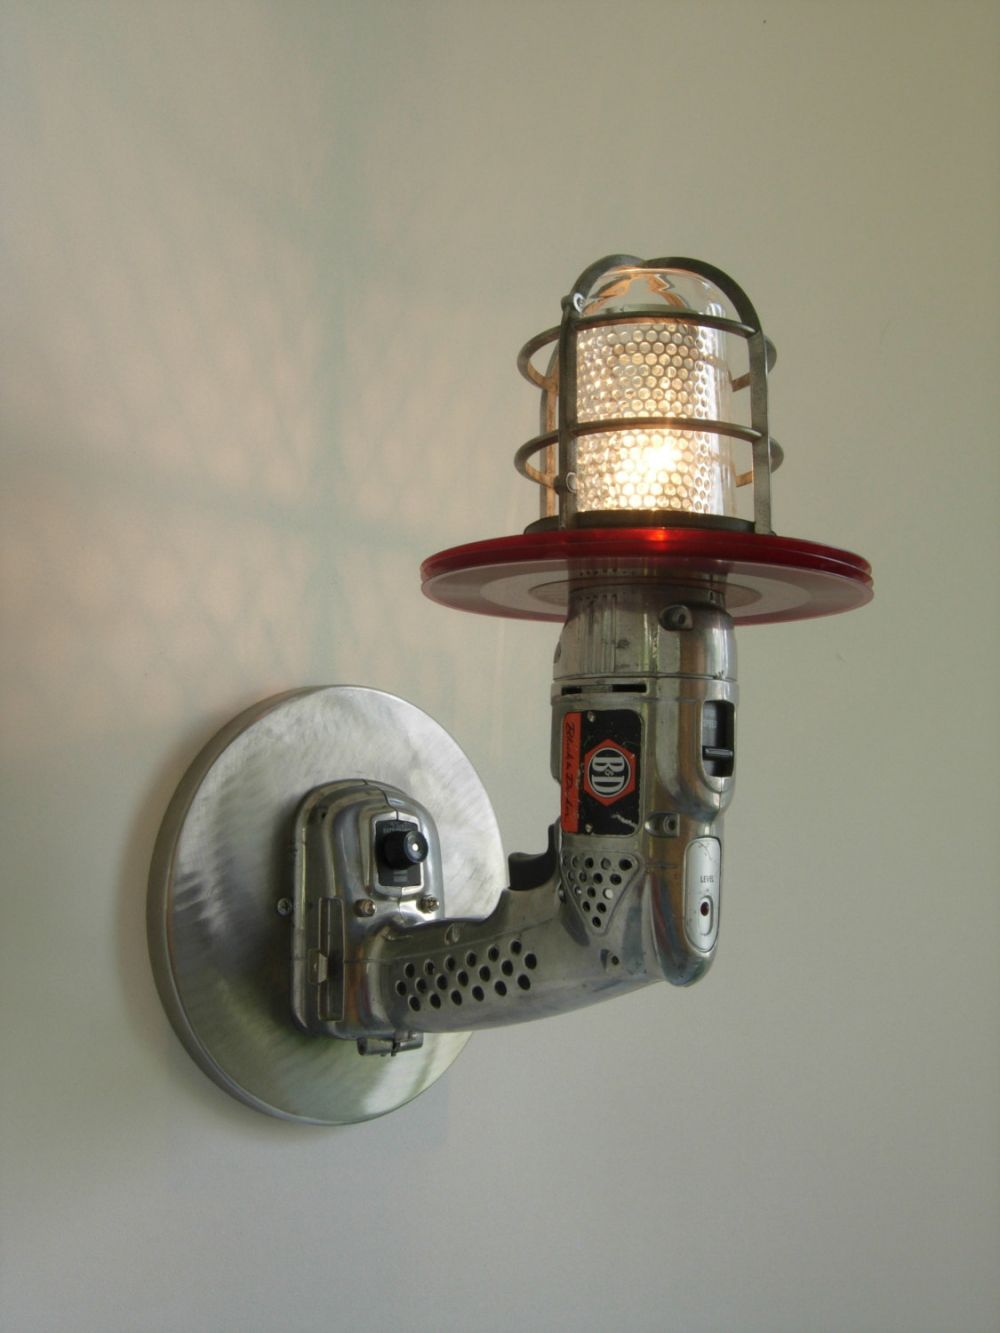 Sci Fi industrial light sconce made with an old cordless drill (and other things). & Sci Fi industrial light sconce made with an old cordless drill (and ...